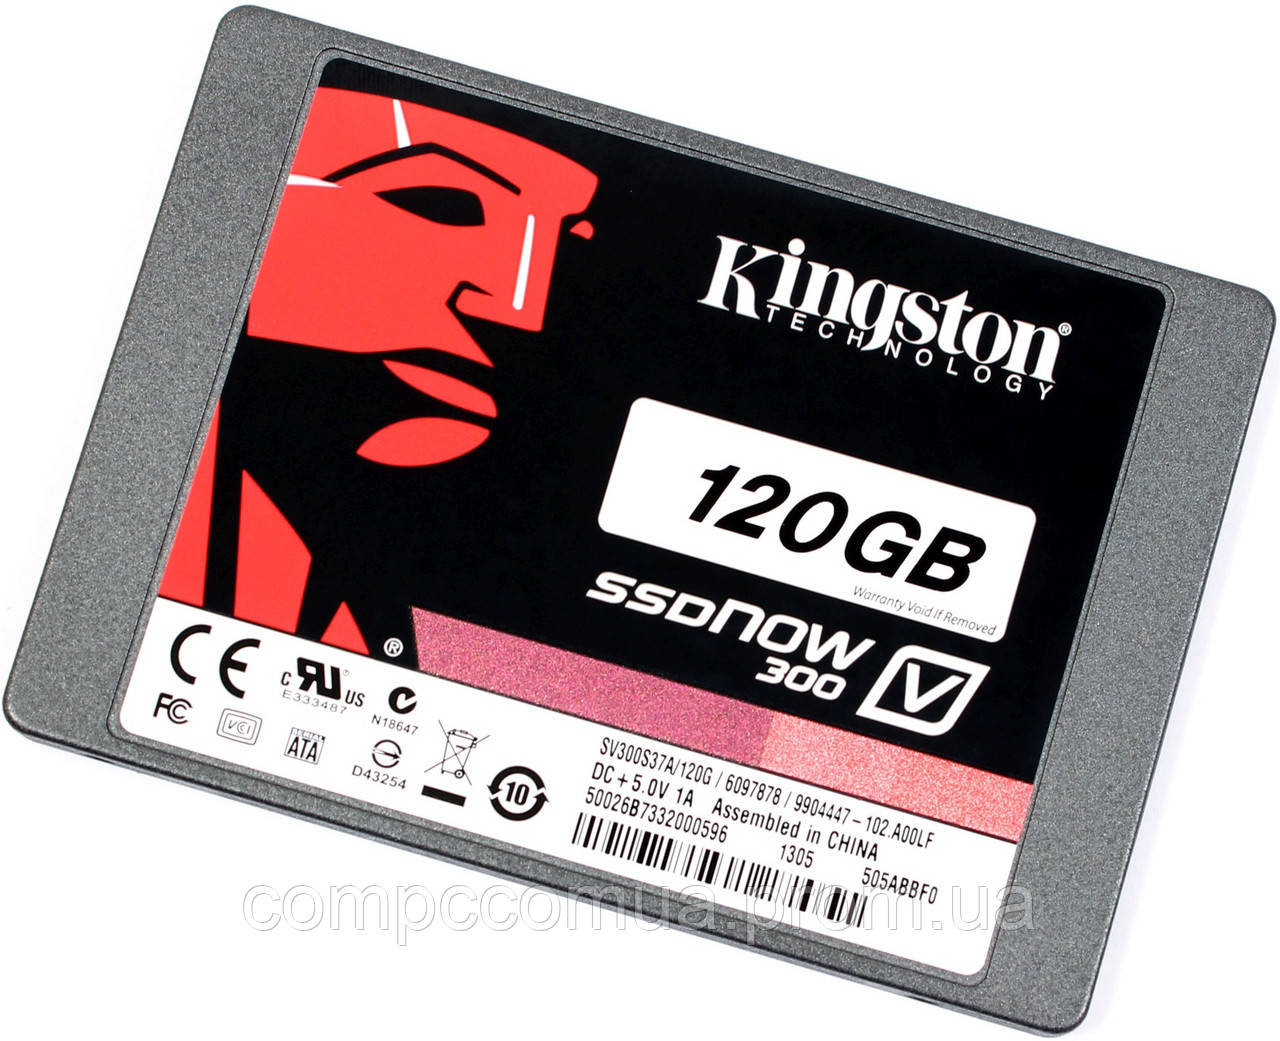 Ssd Kingston V300 120gb Mlc 25 Sataiii 885 Sata Iii Compccomua